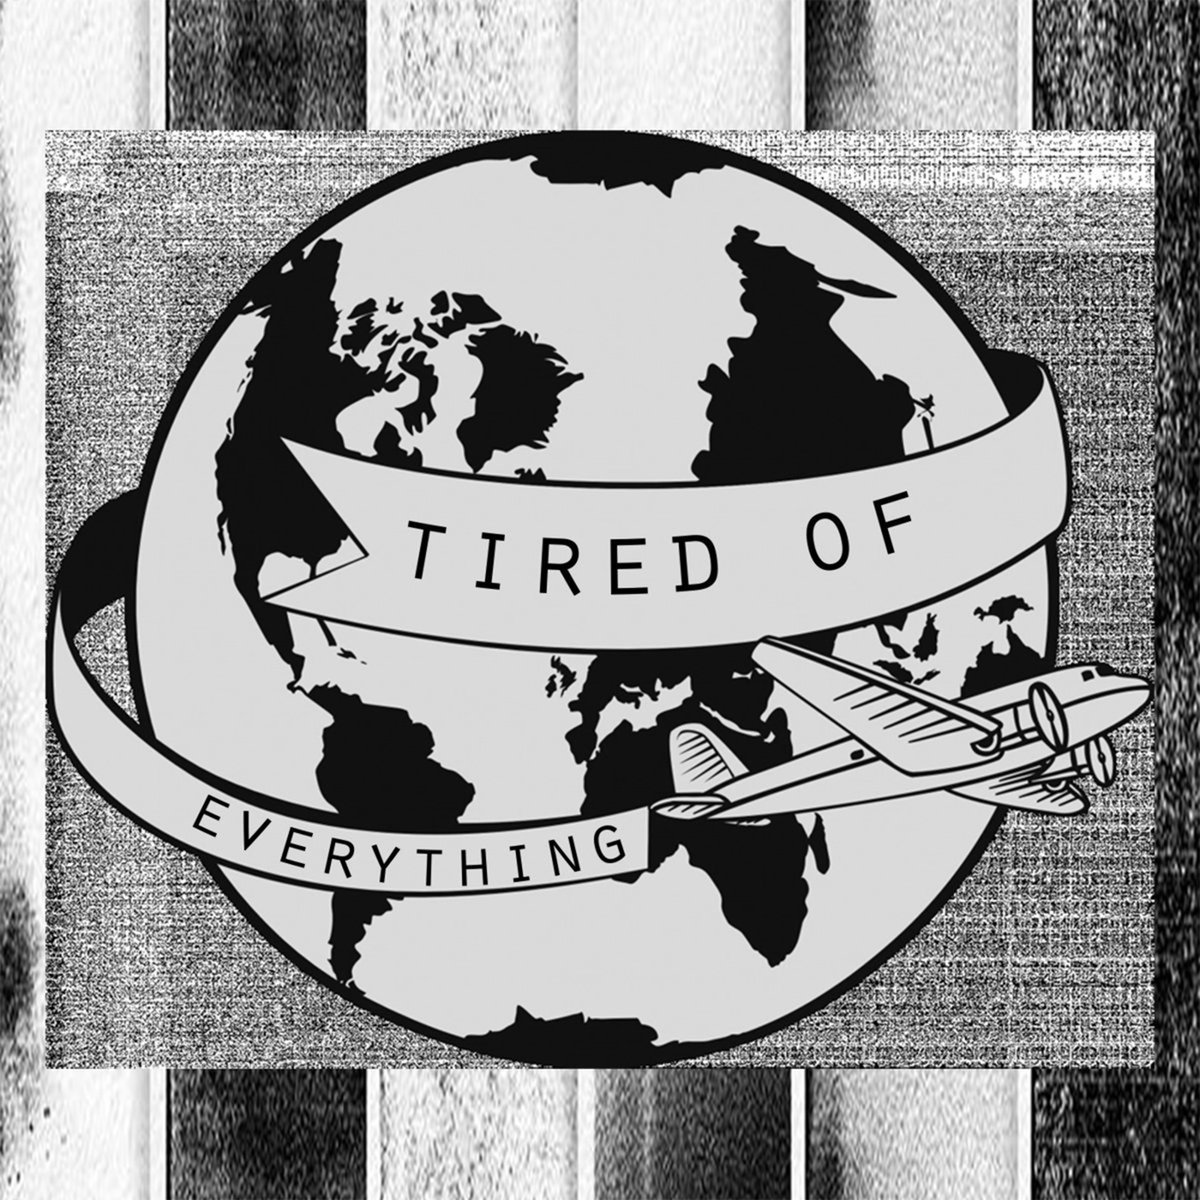 tiredofeverything-silenced.jpg